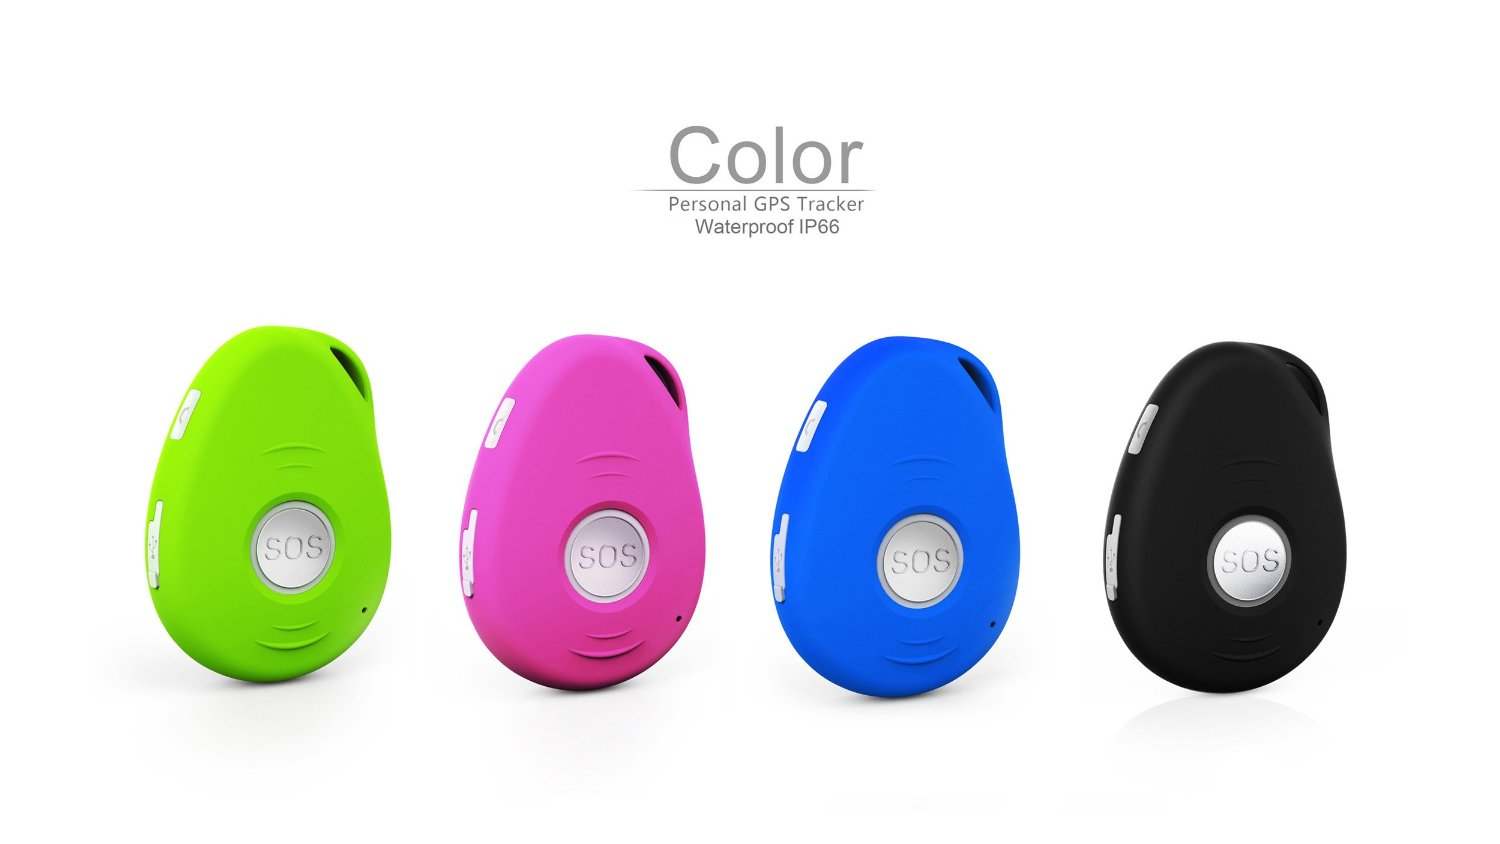 Vision one gps colors